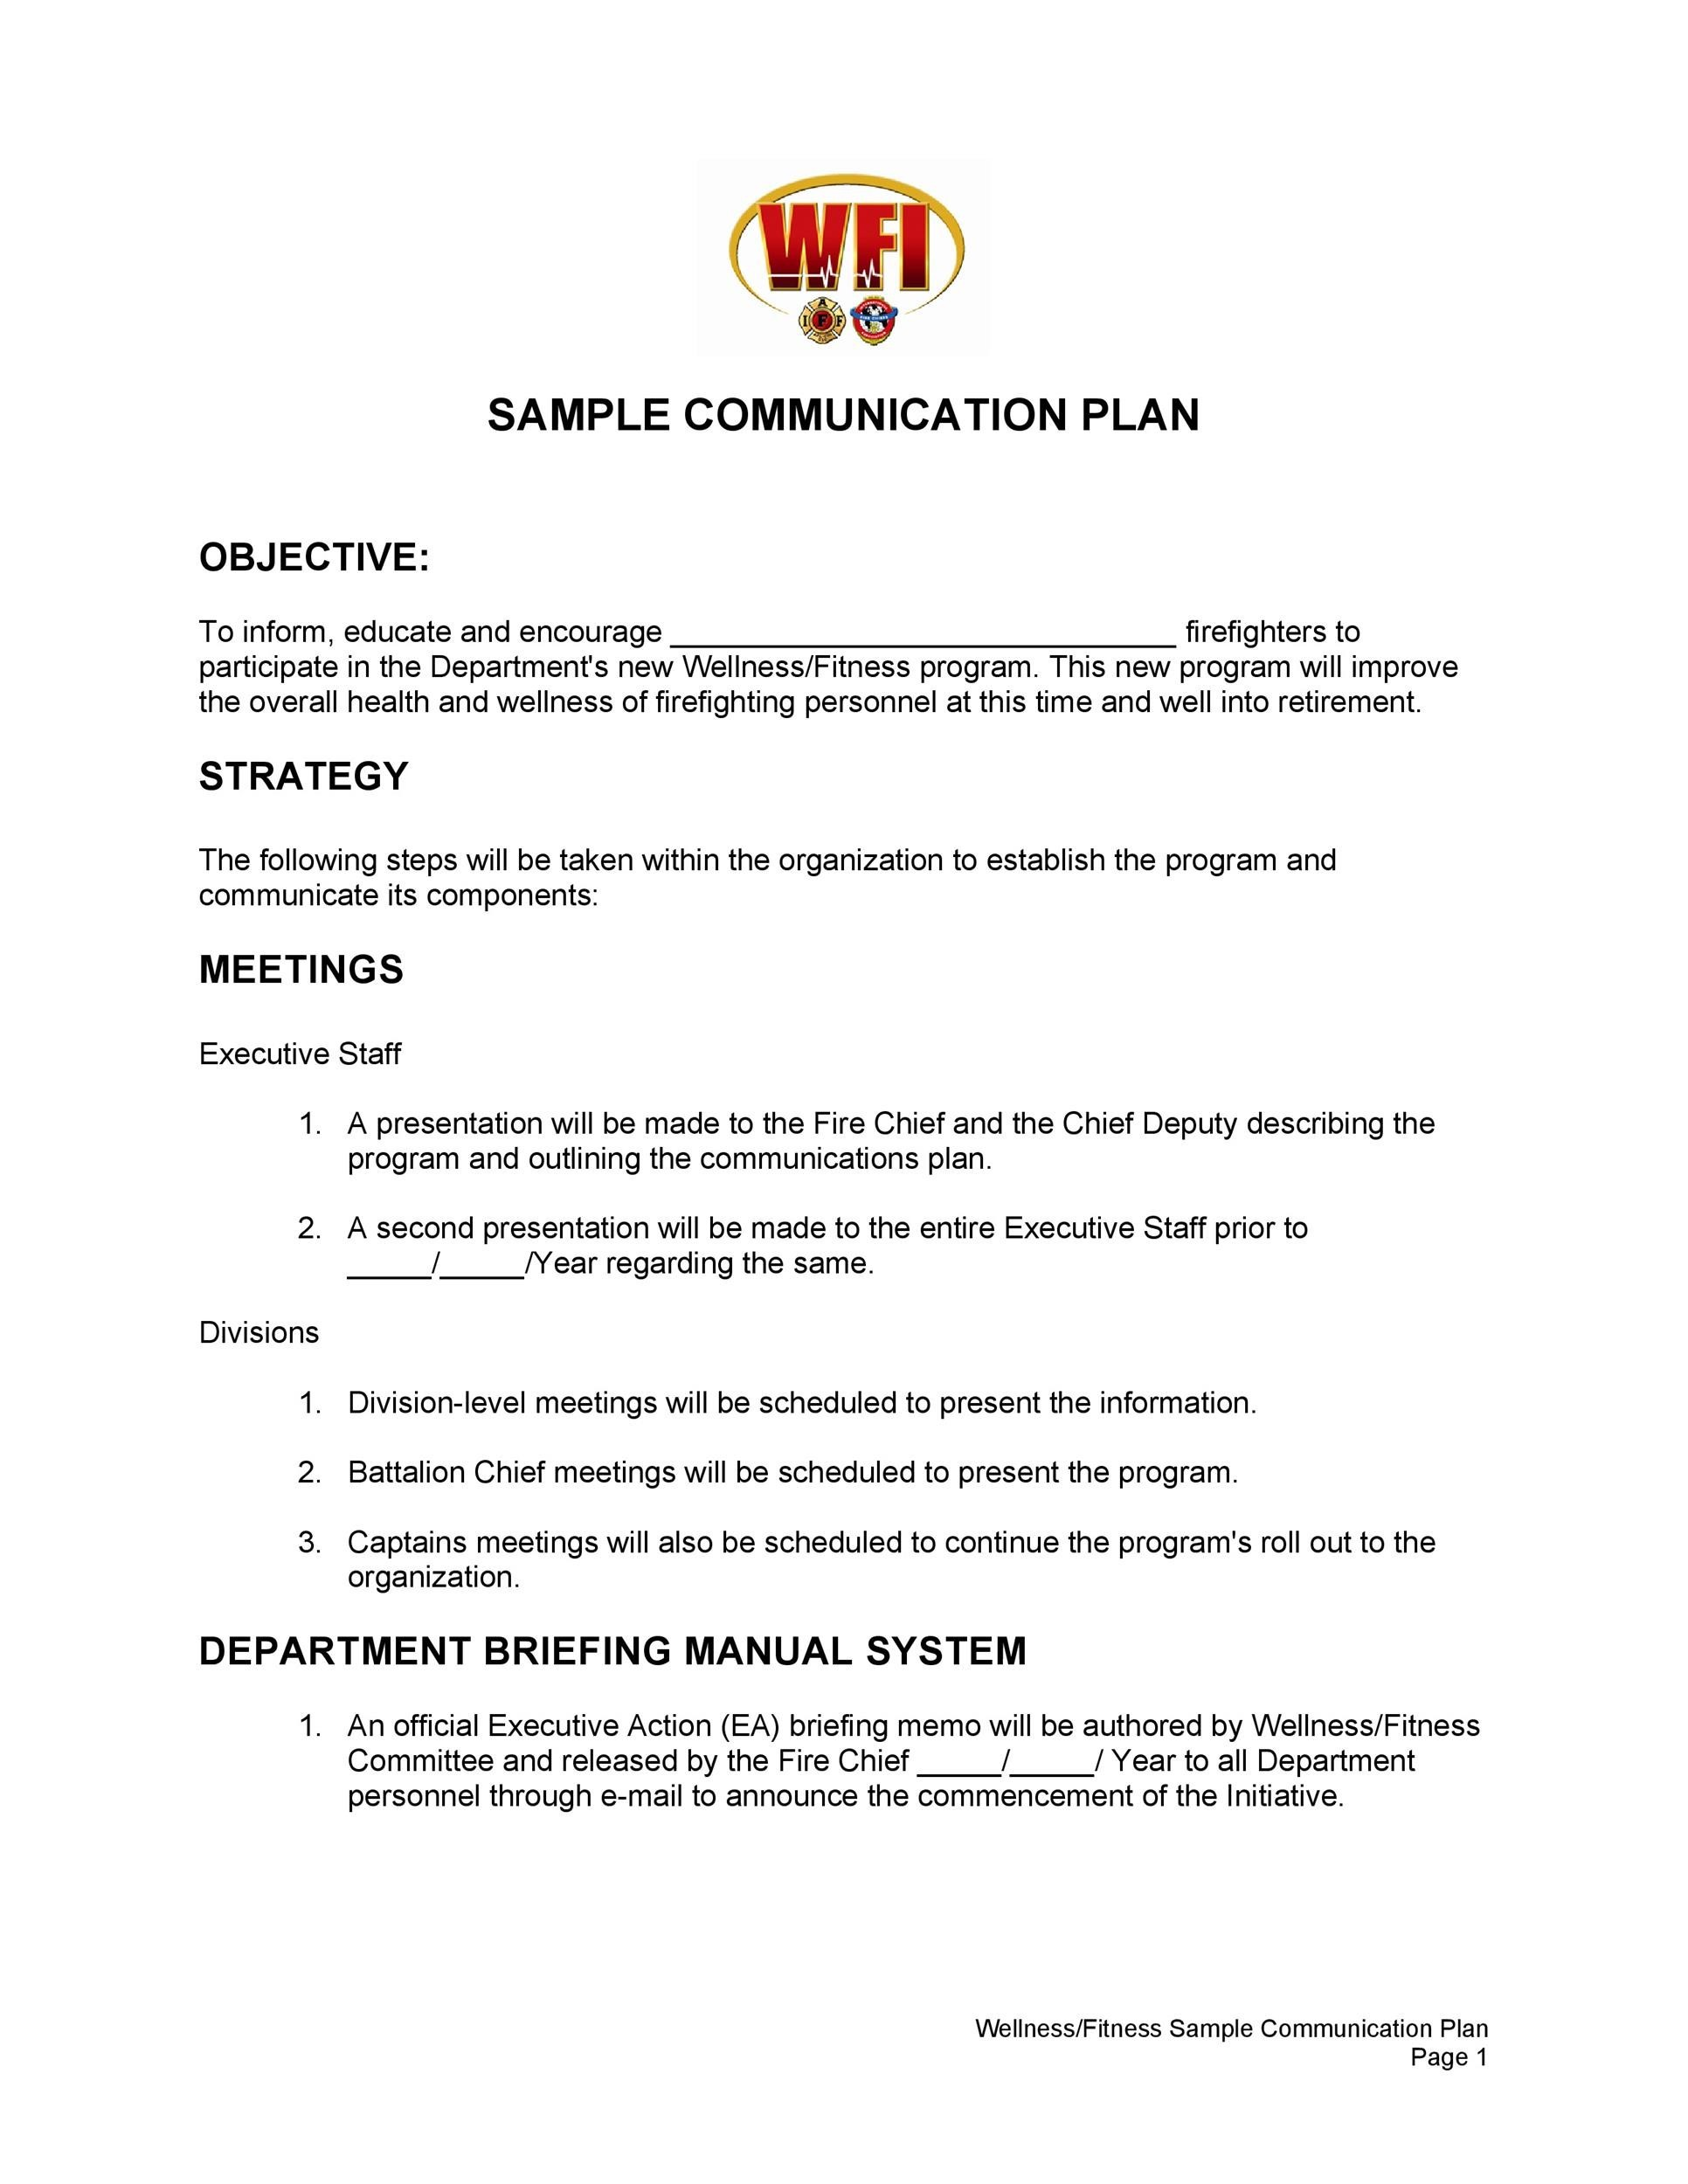 Free Communication Plan Template 05